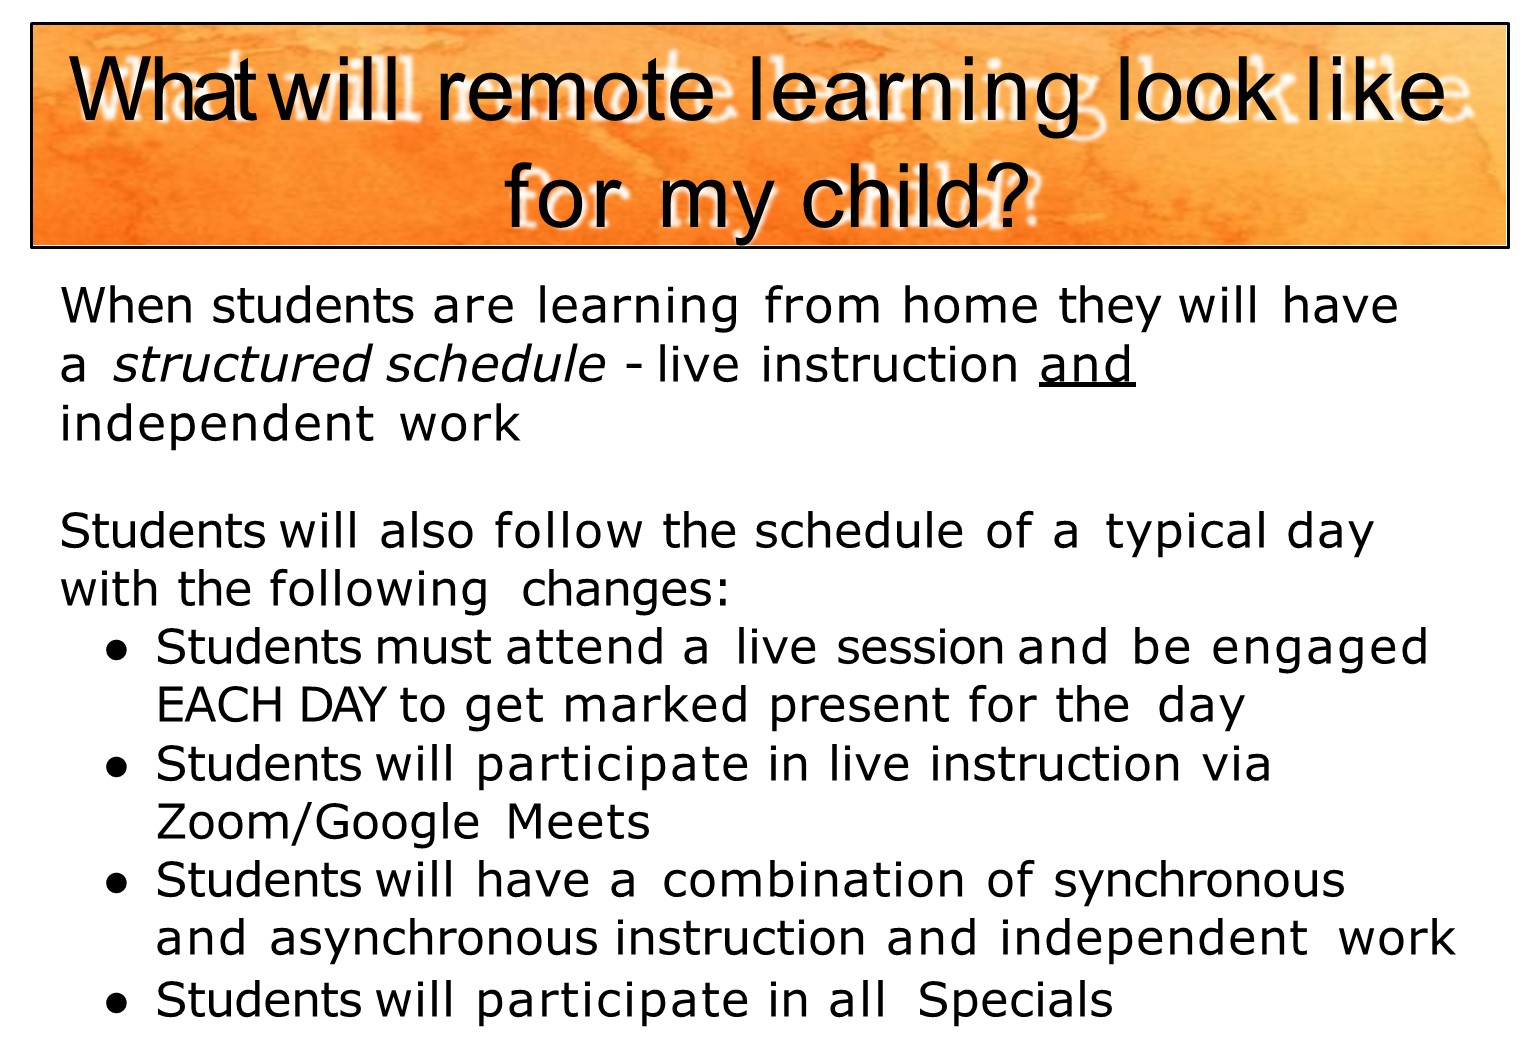 Remote learning schedules